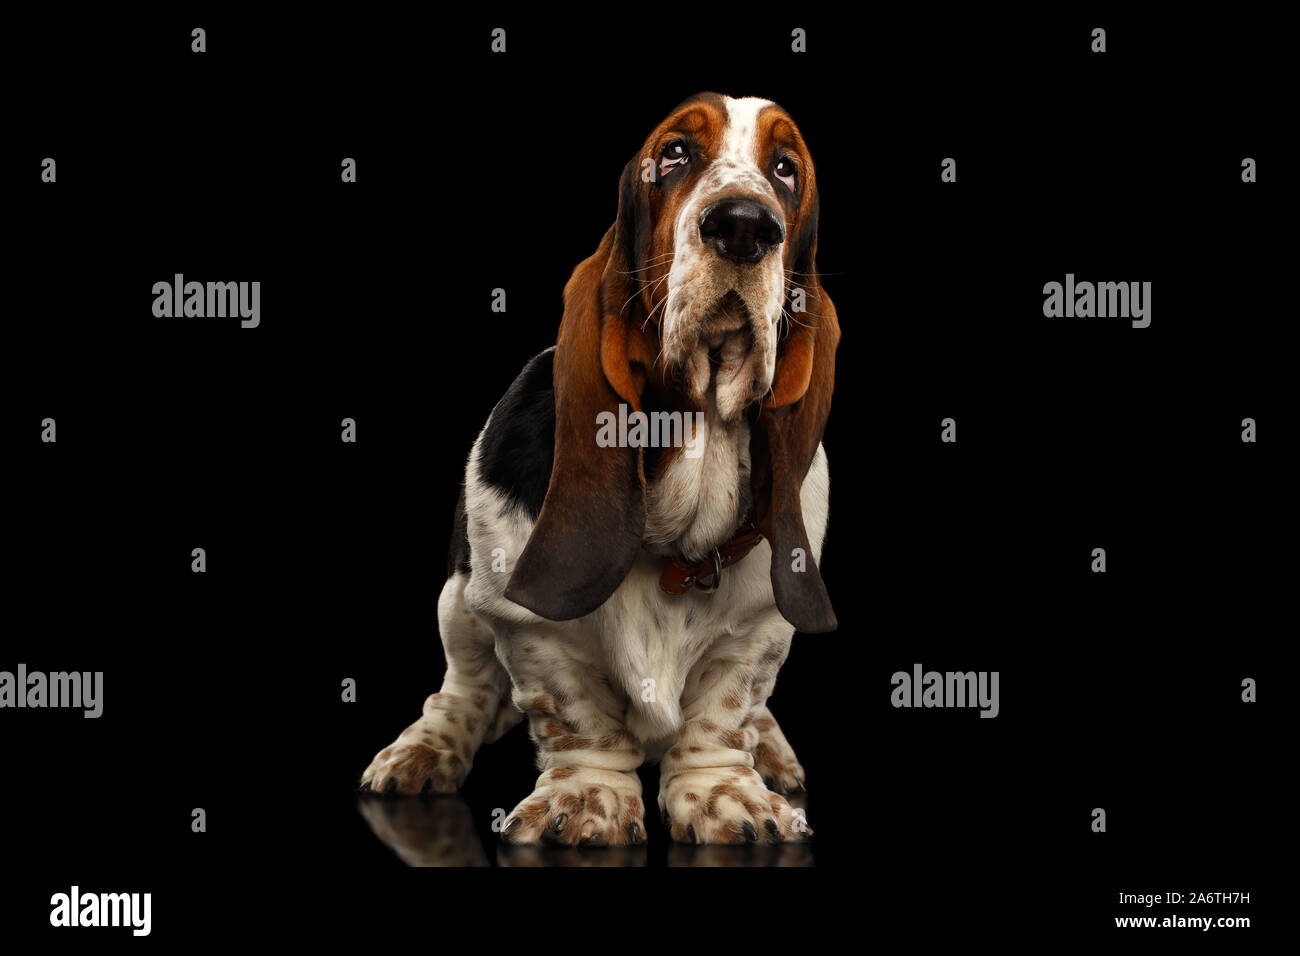 Funny Basset Hound Dog Standing And Looks Indifferent On Isolated Black Background Stare Up Stock Photo Alamy